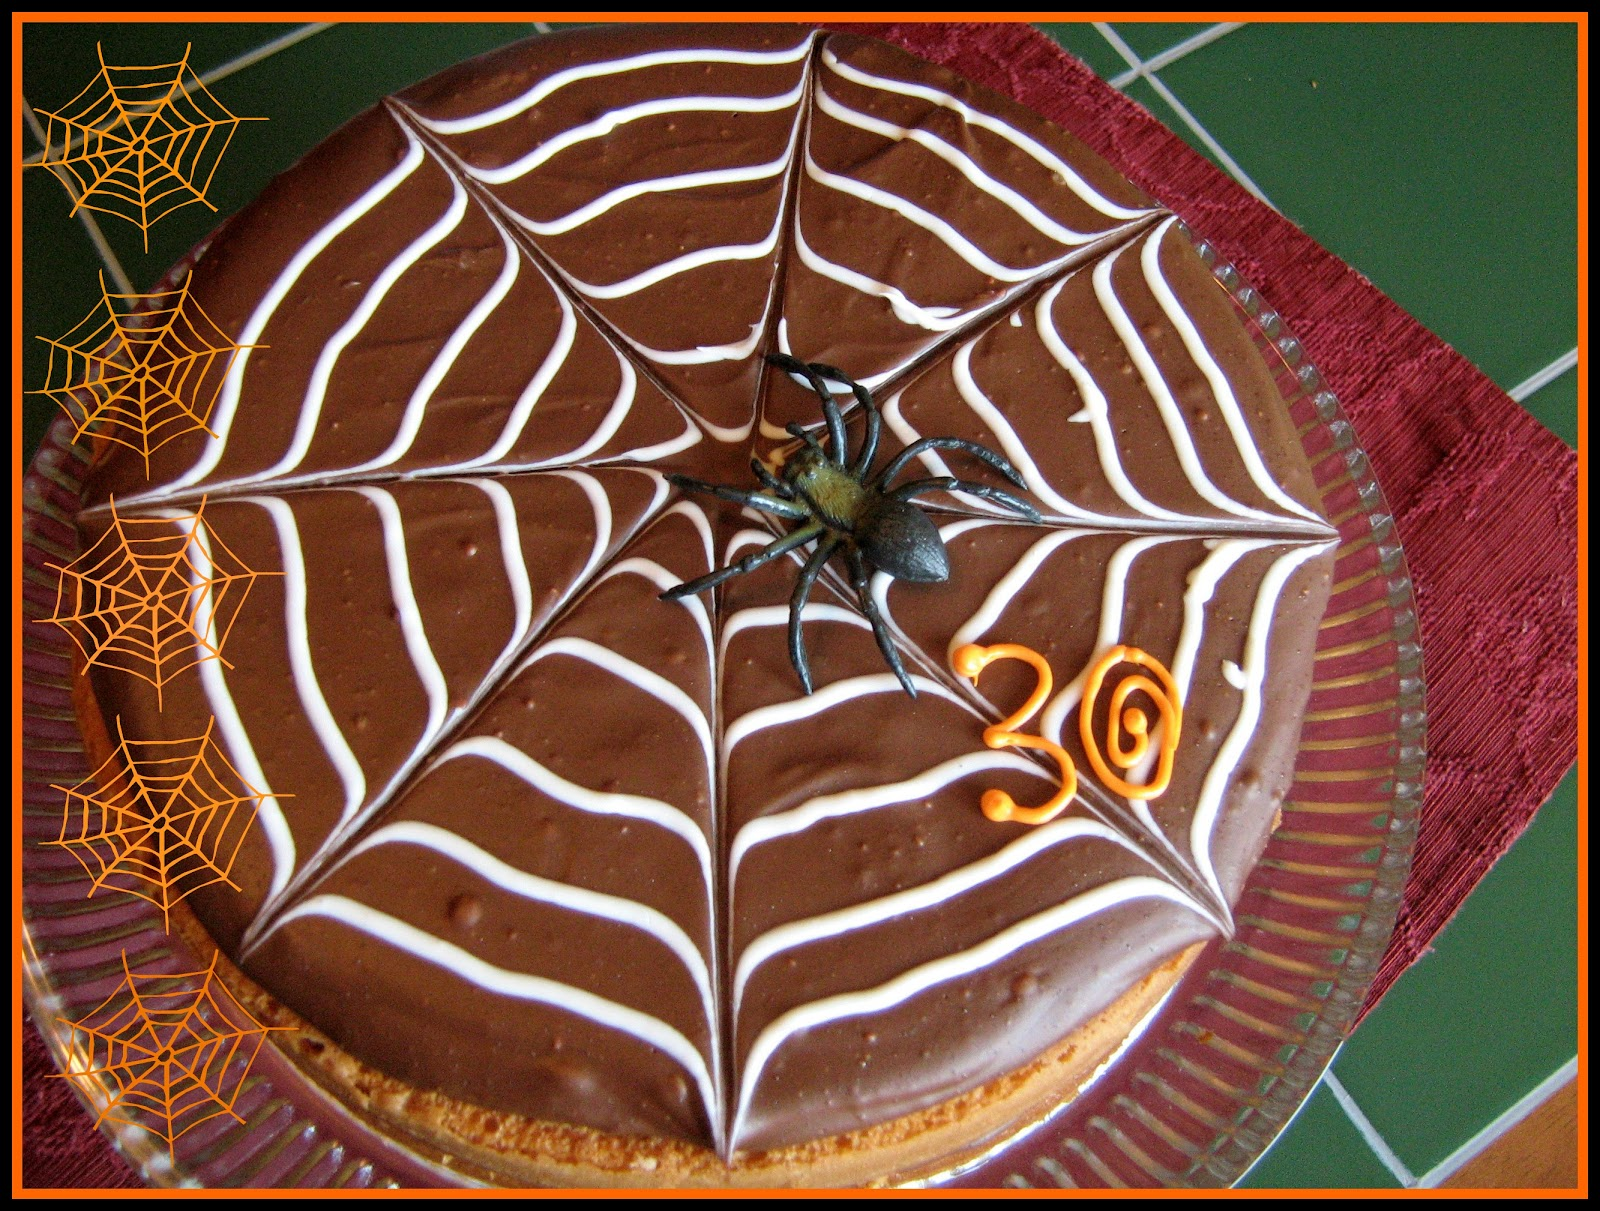 how to draw a spider web on a cake